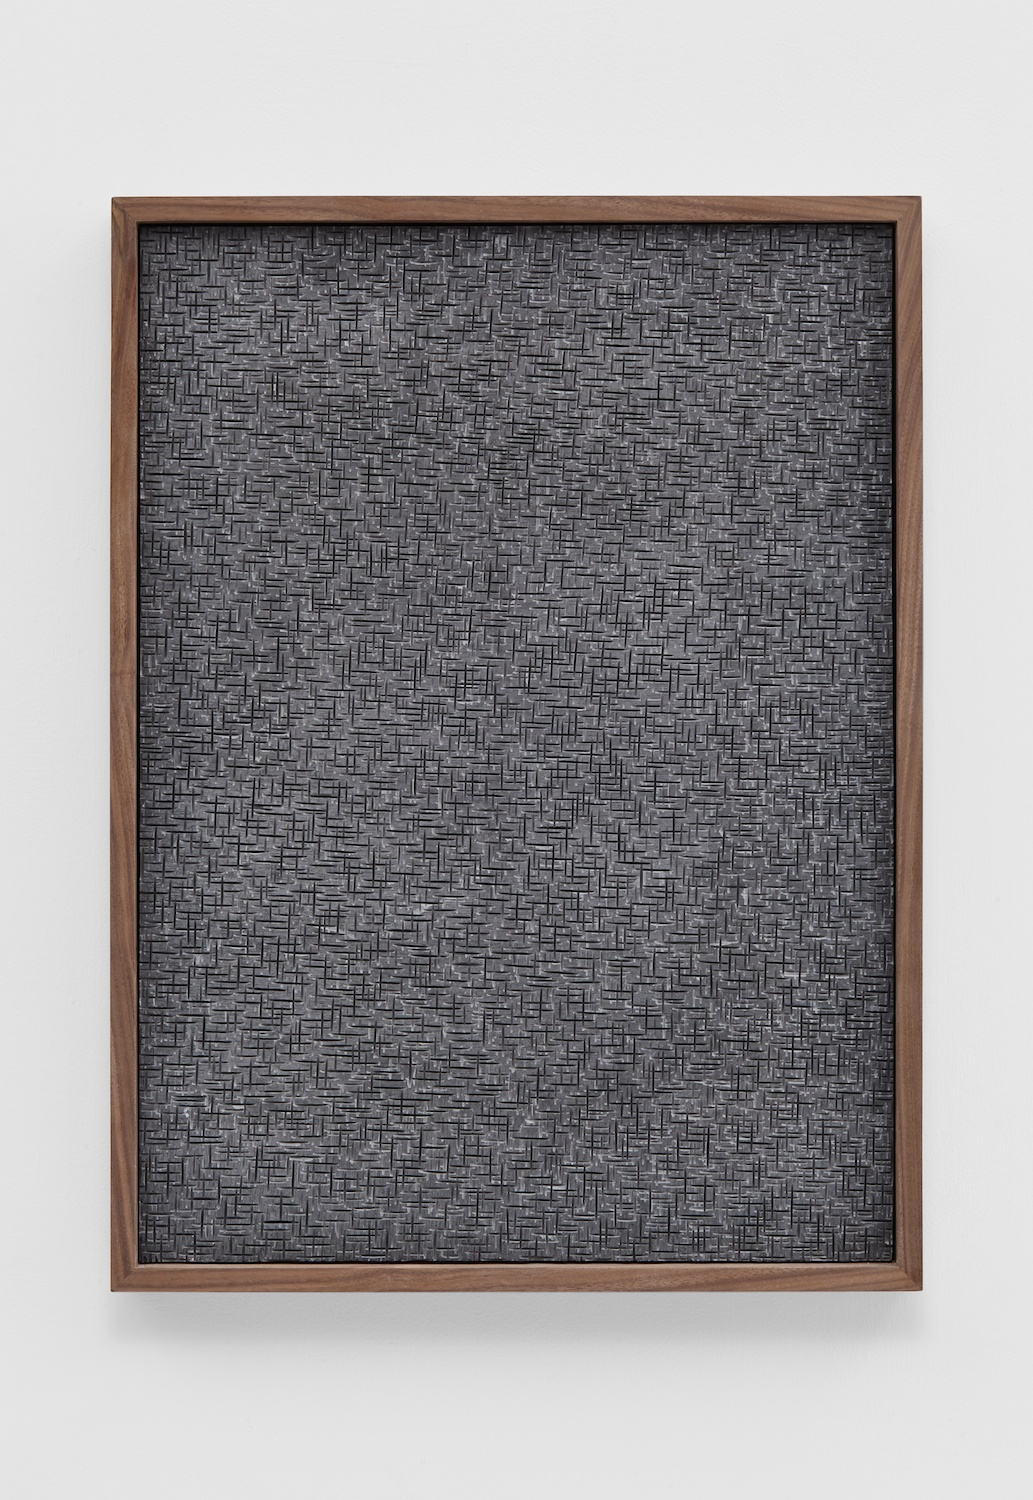 Anthony Pearson  Untitled (Etched Plaster)  2014 Pigmented hydrocal in walnut frame 24 ½h x 18 ½w x 2 ¼d in AP359